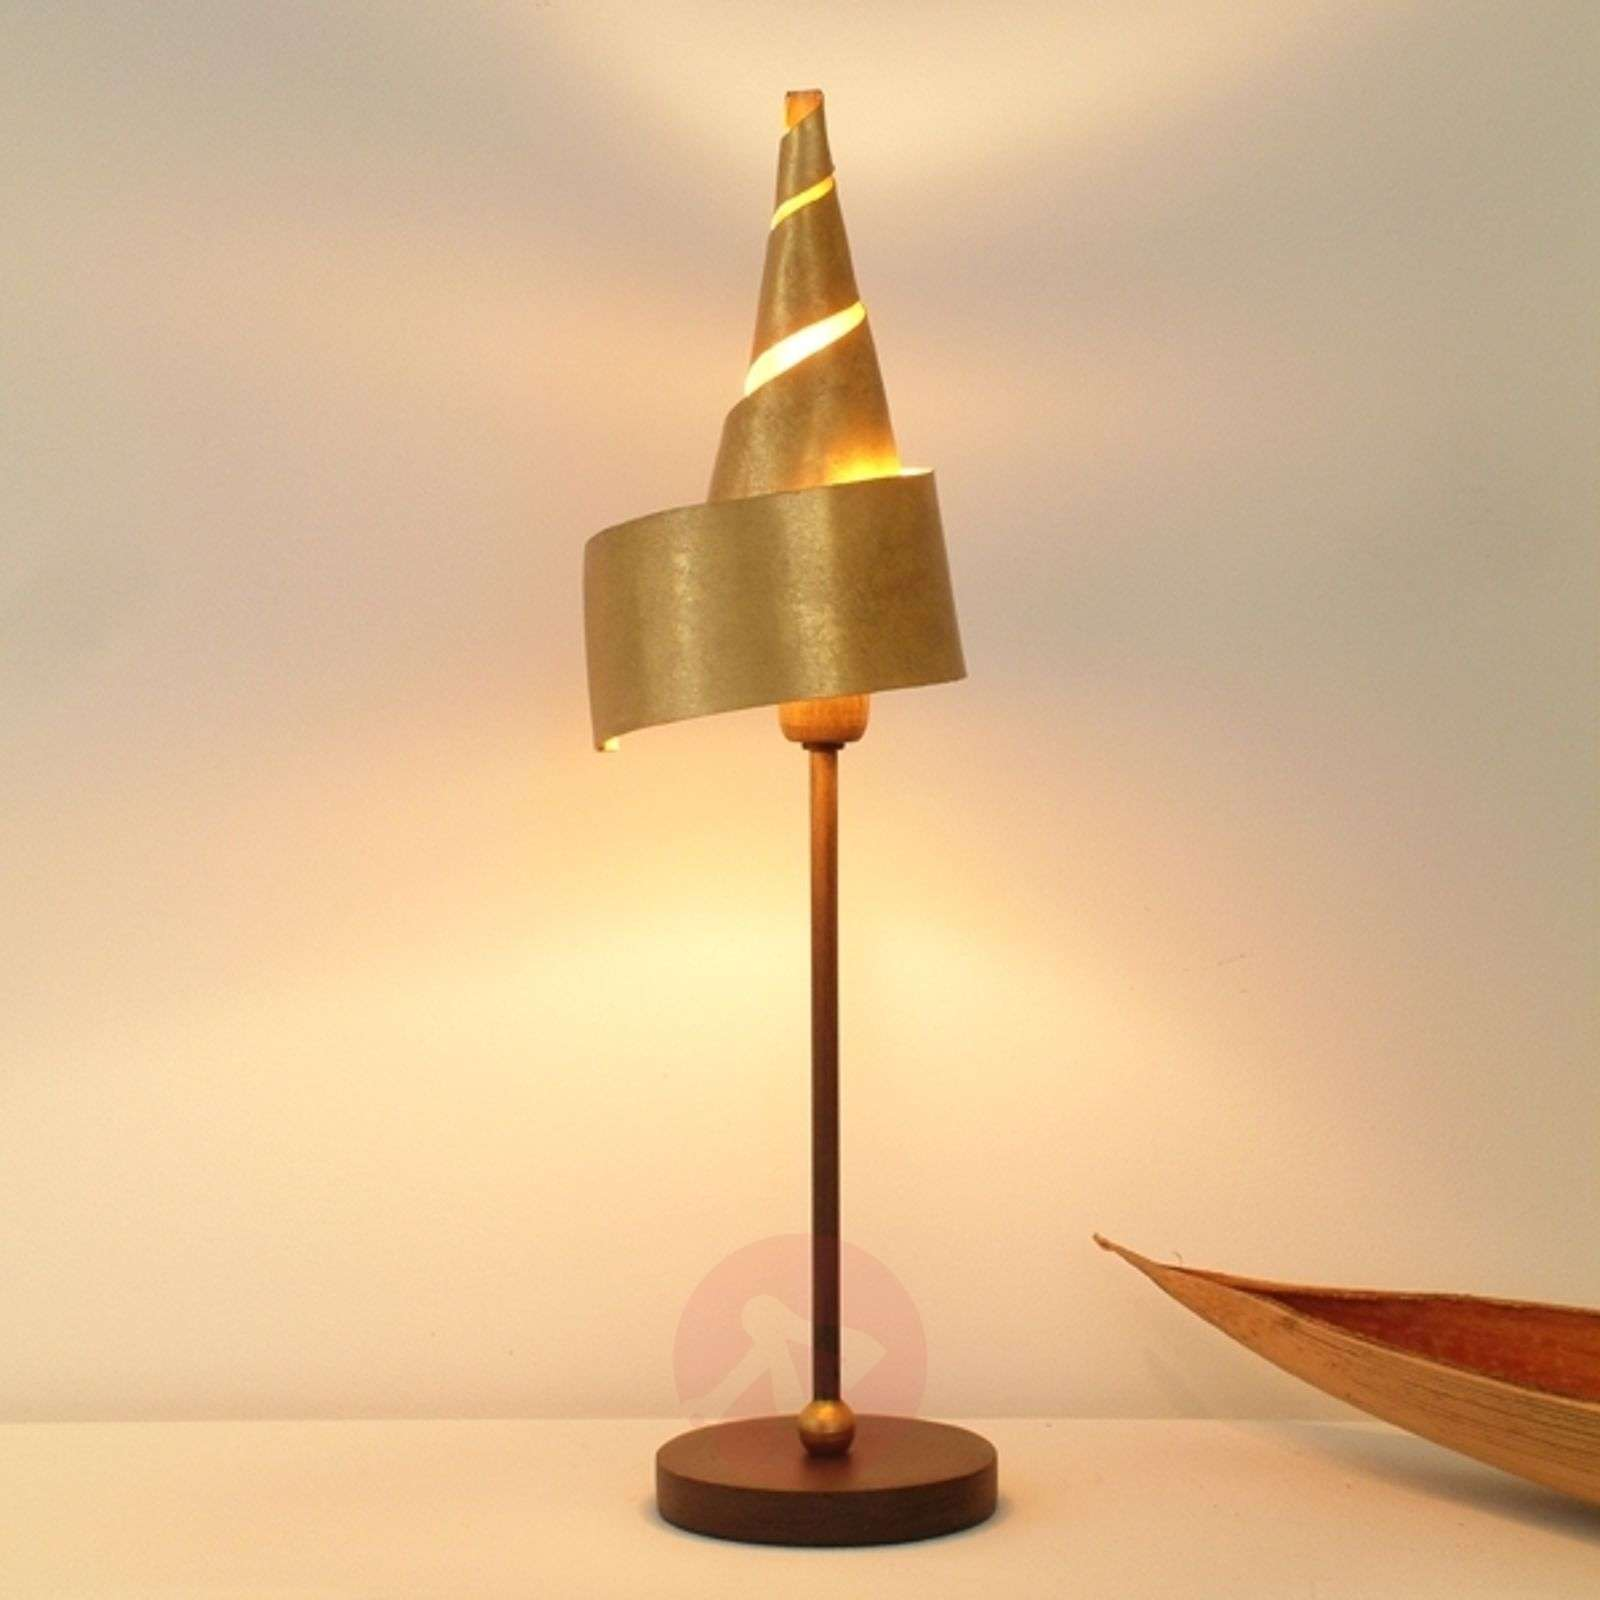 Golden table lamp ZAUBERHUT with metal shade-4512040-01